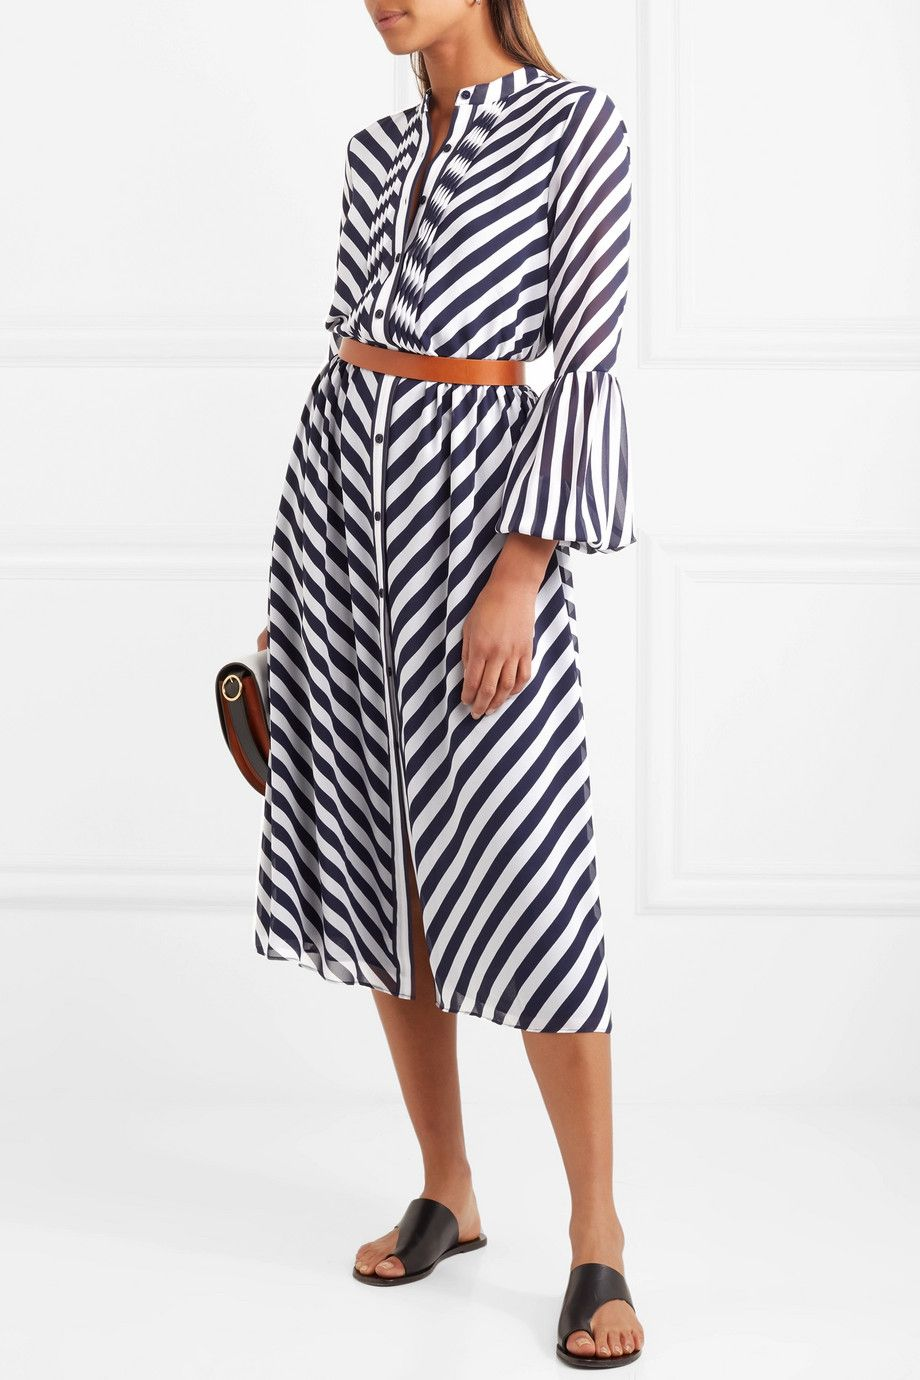 Michael Kors Striped Georgette Midi Dress Net A Porter Com